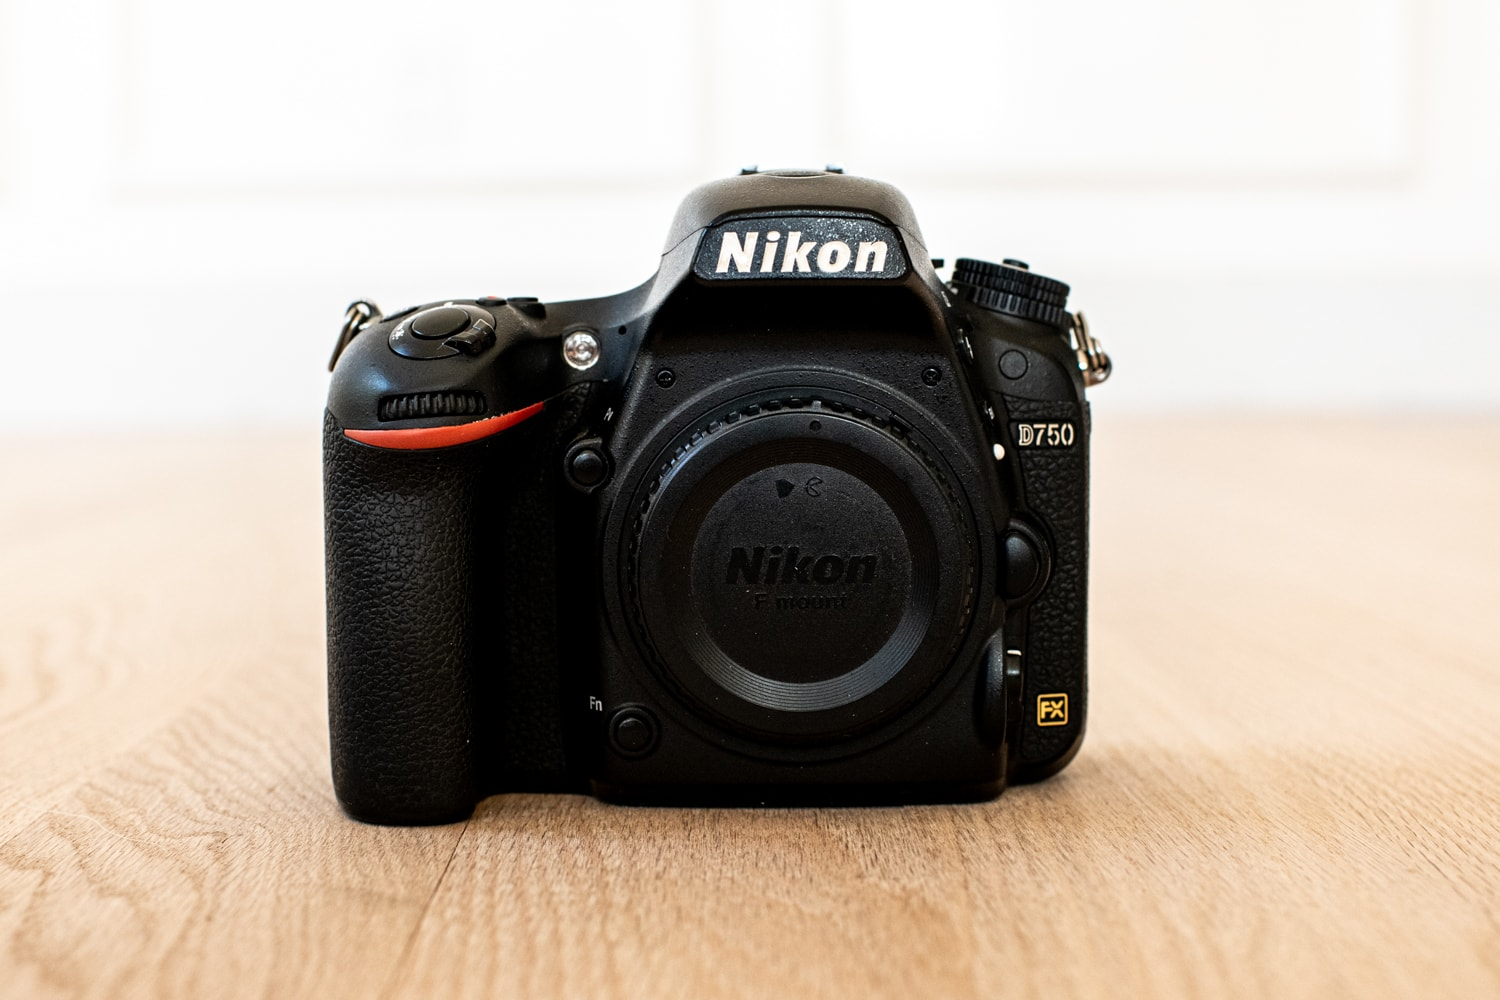 Nikon D750 dslr camera body for wedding photography.